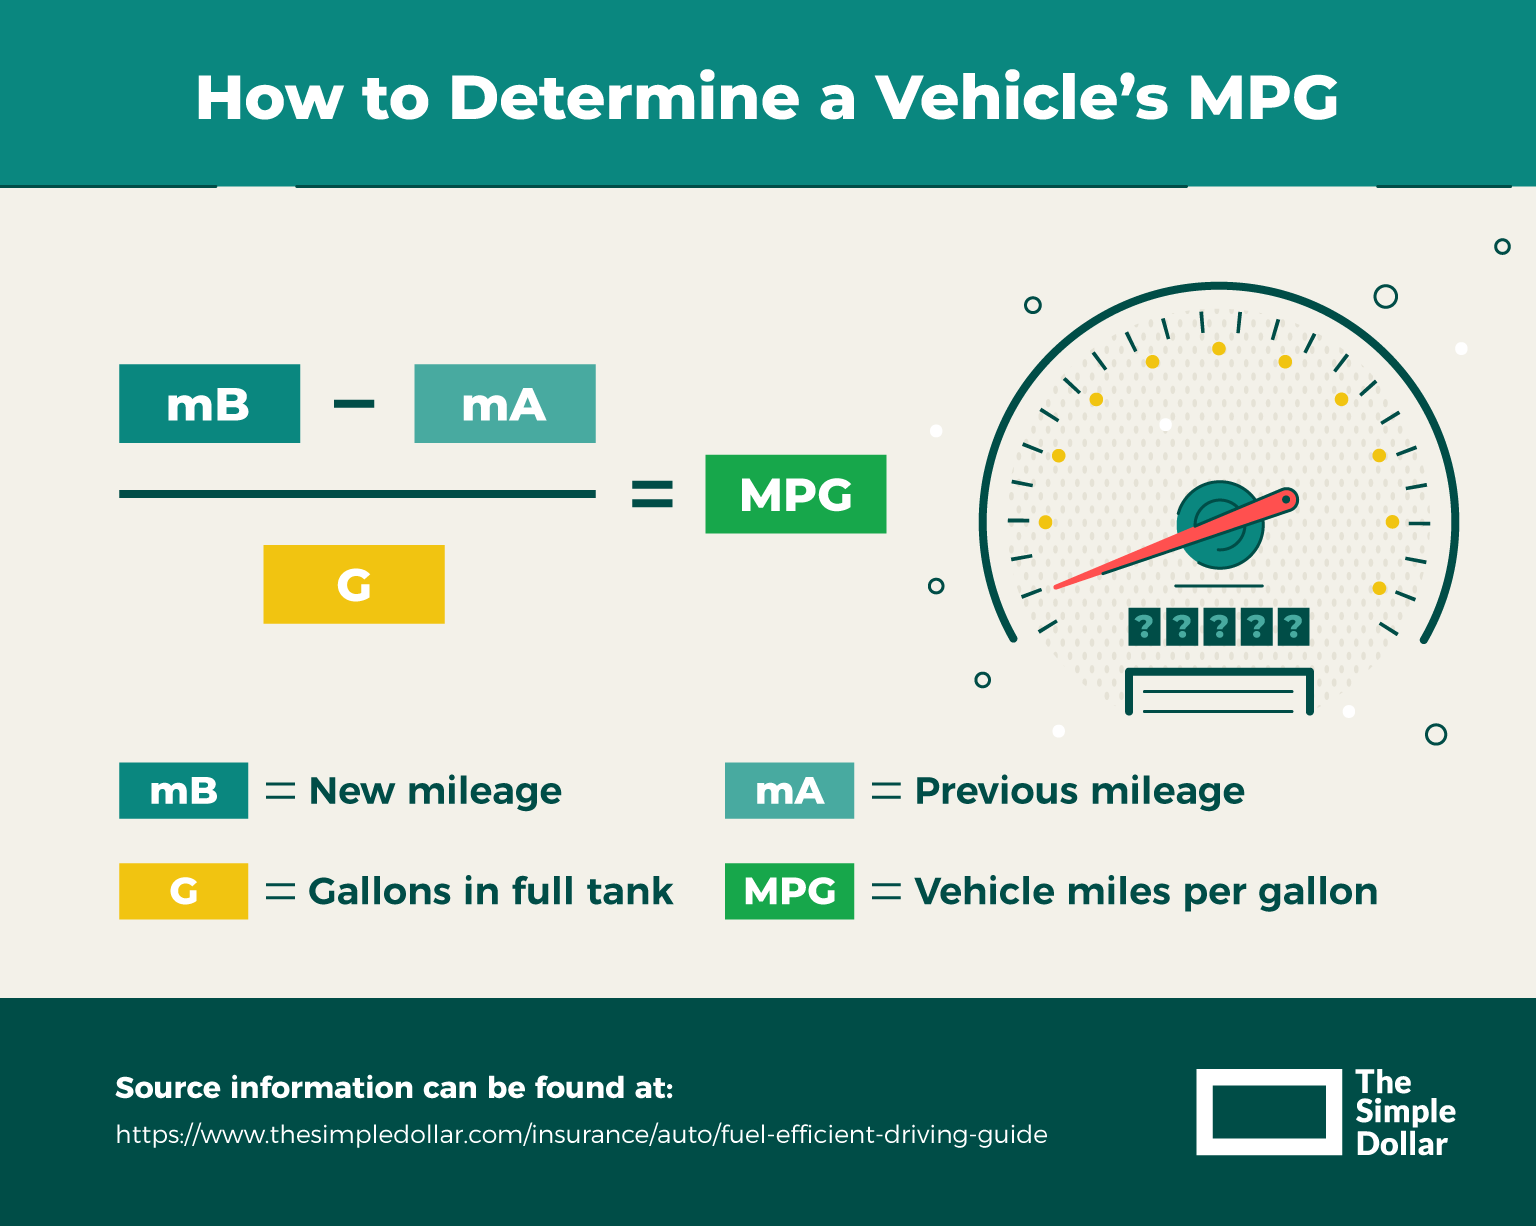 Determining a vehicle's mpg